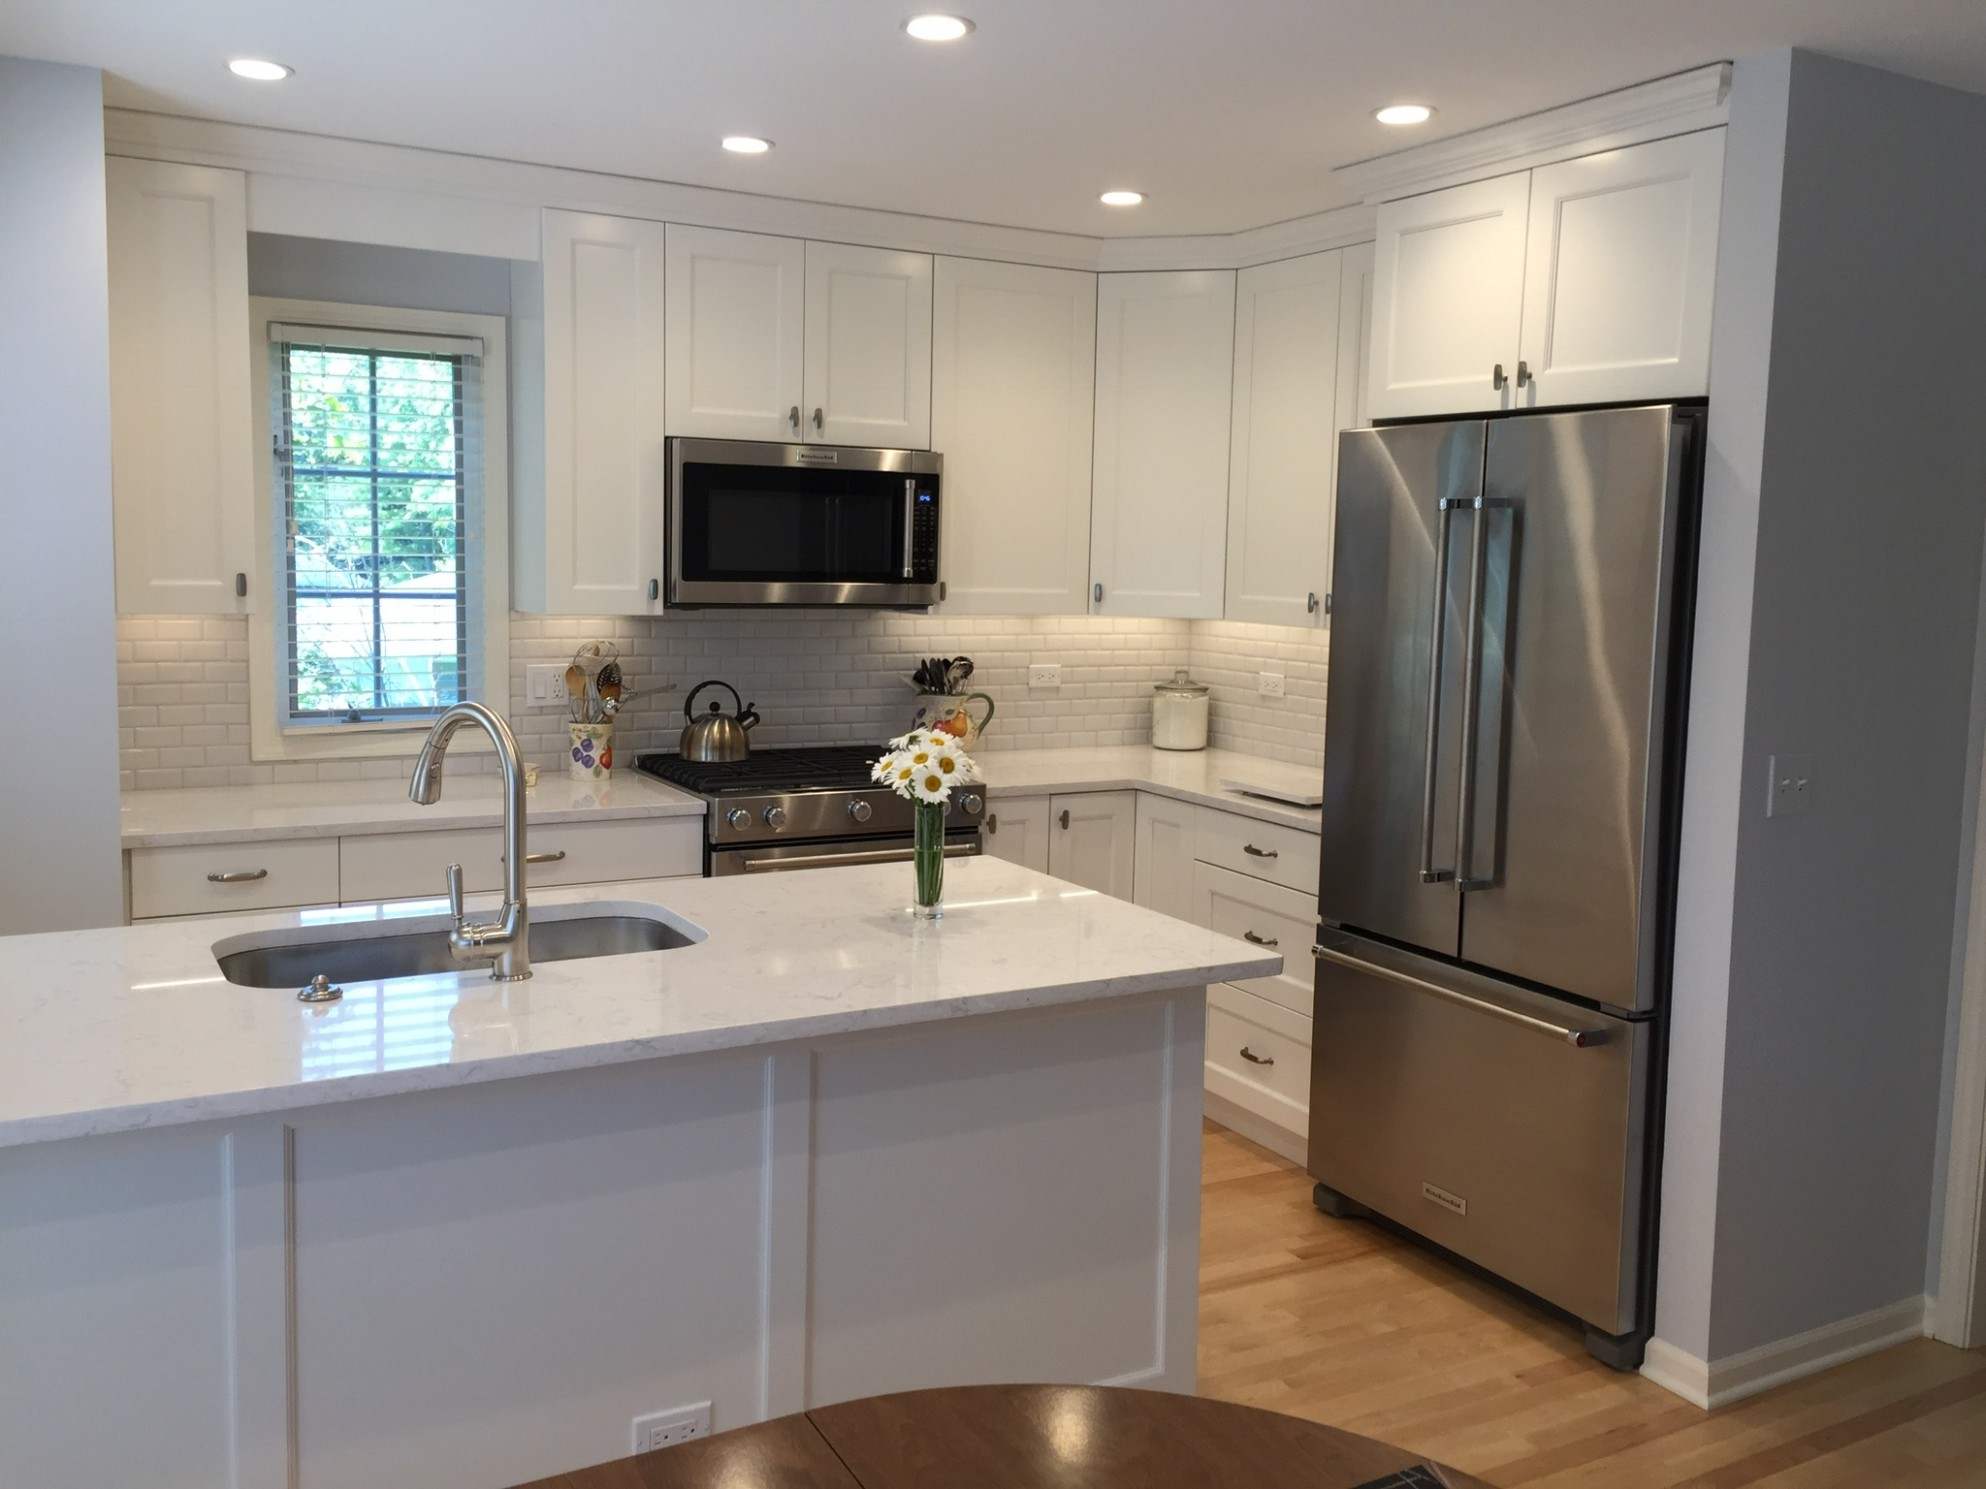 9 Reasons Why Summer is The Best Time to Remodel Your Kitchen  - Kitchen Cabinets Niles